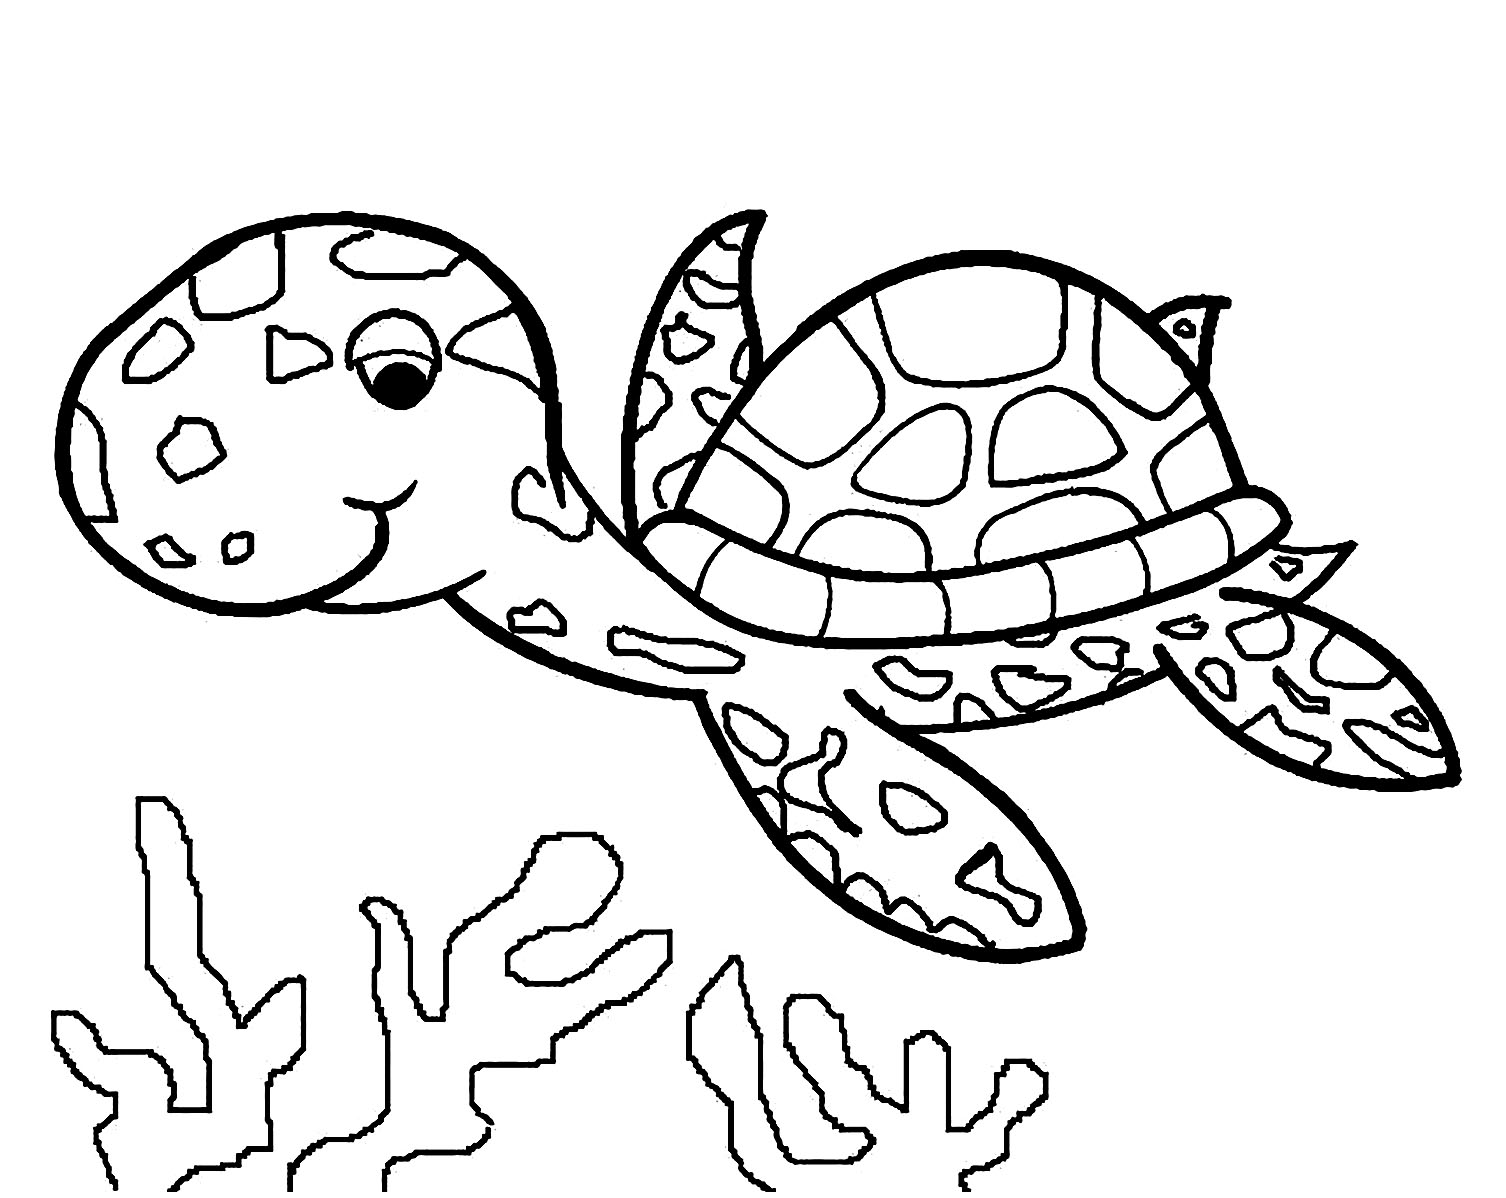 tortoise coloring page turtles to color for kids turtles kids coloring pages page tortoise coloring